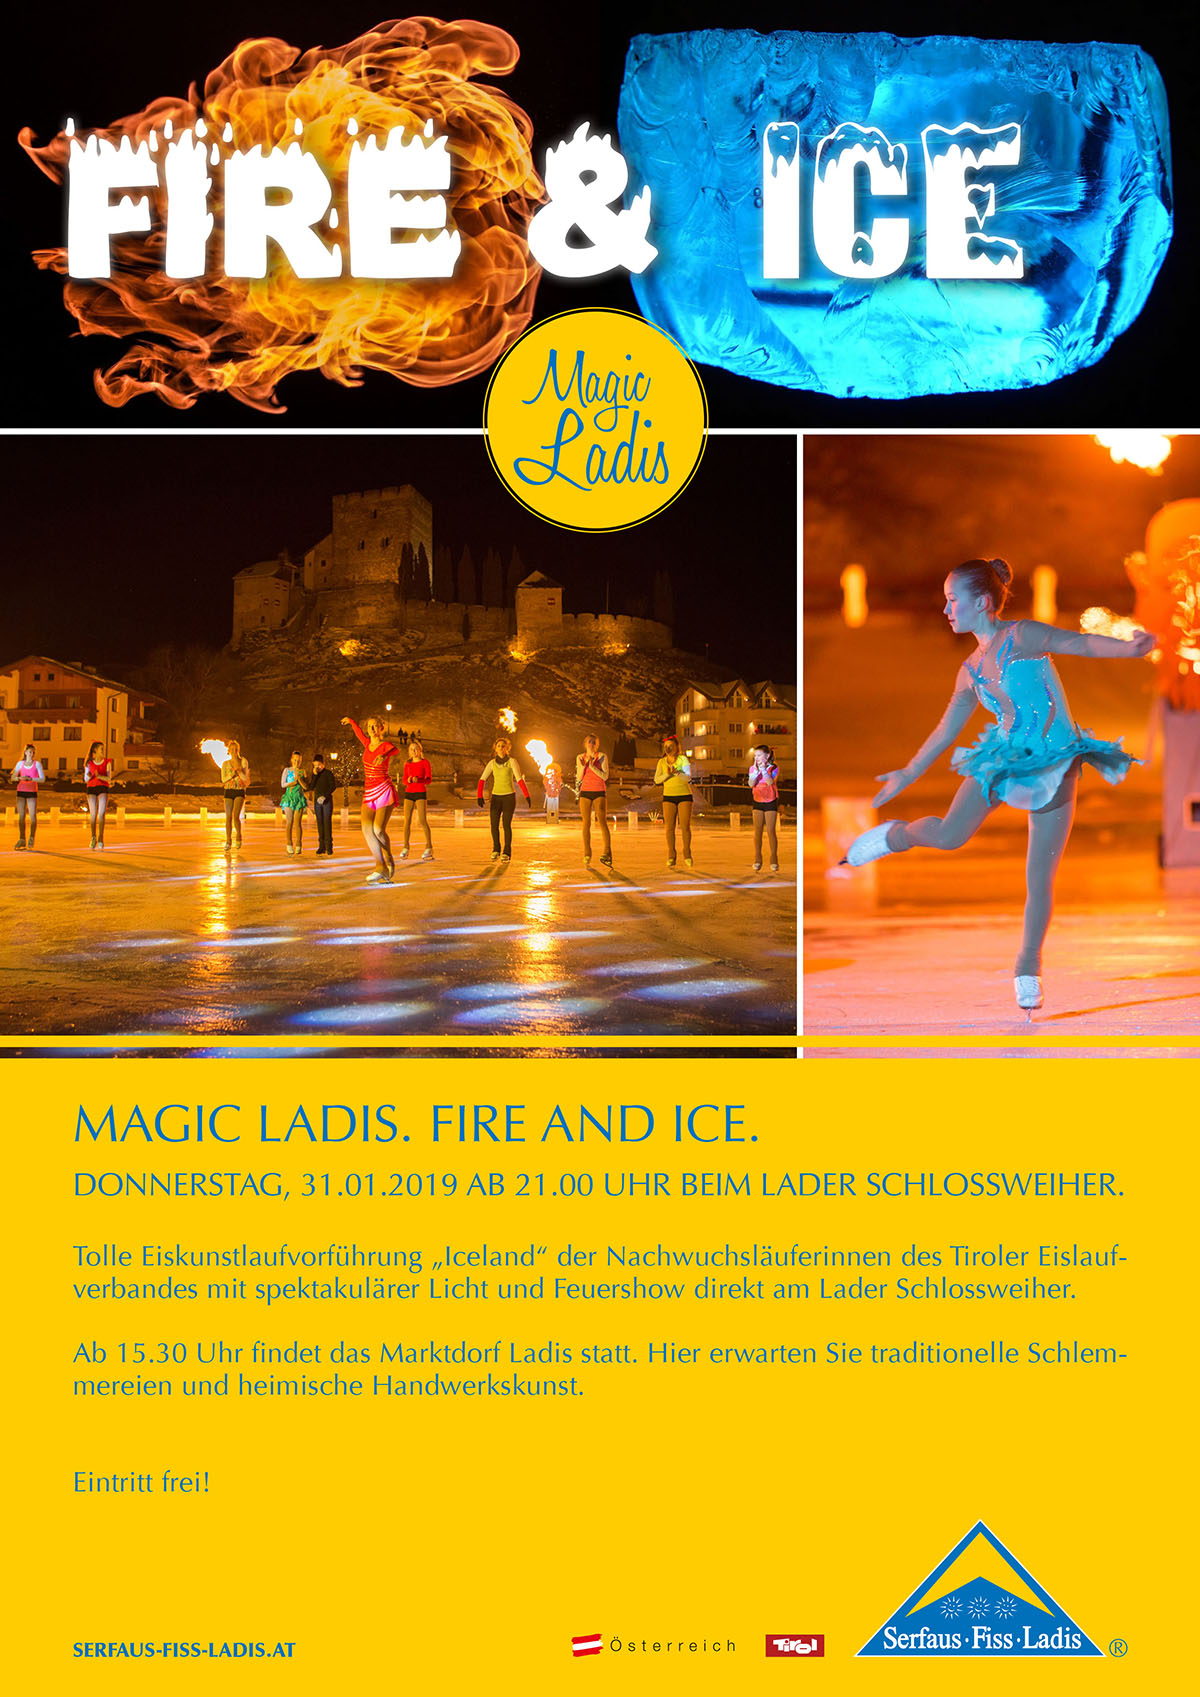 Magic Ladis: Fire And Ice @ Burgweiher Ladis | Ladis | Tirol | Österreich